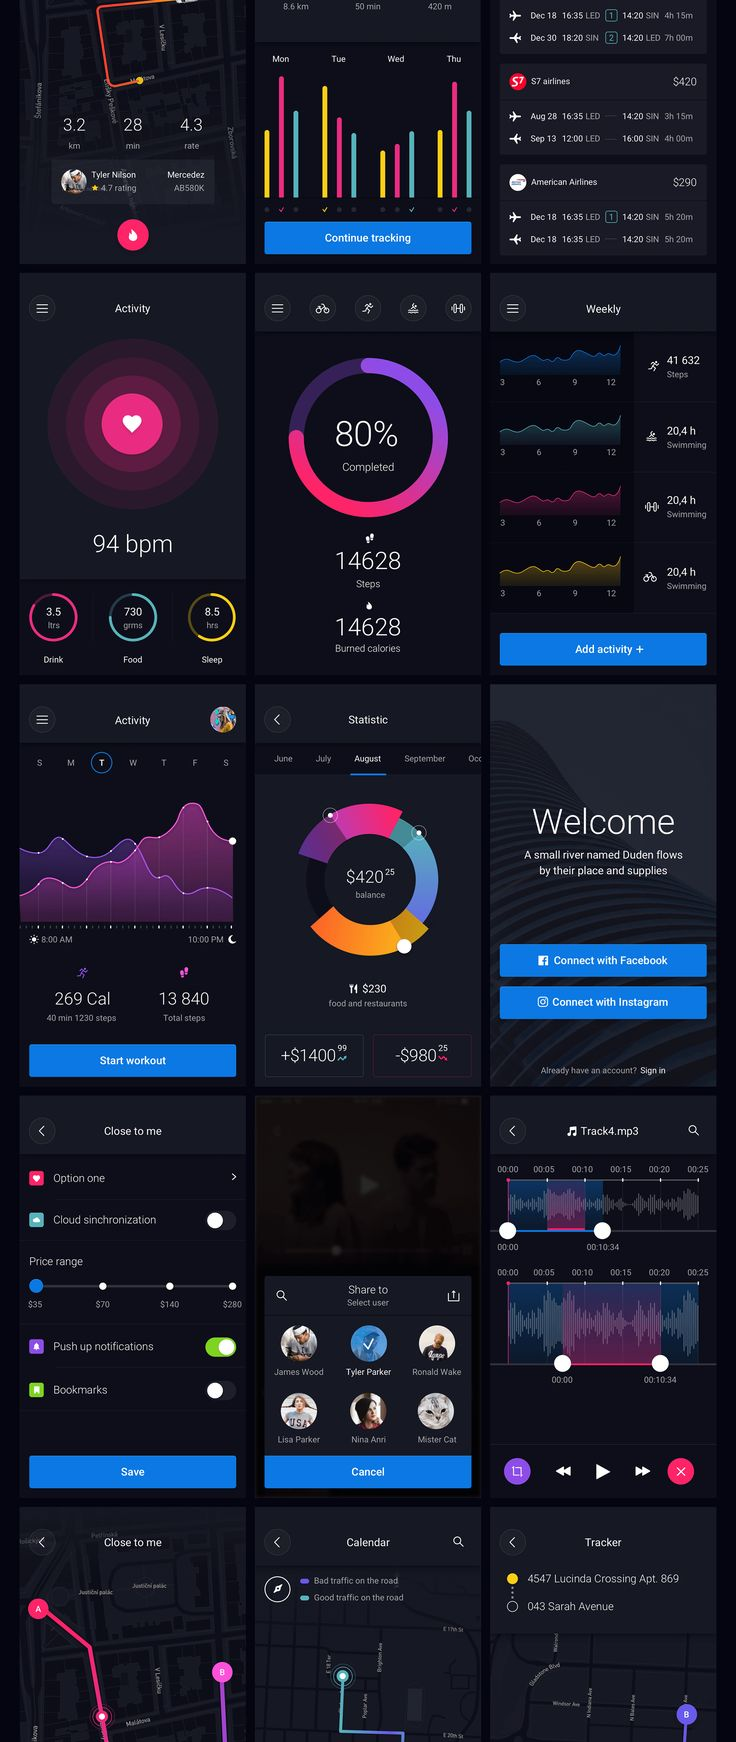 Pin is a huge set of pre-made UI elements that will help you to speed up your app design process. With hundreds of UI elements like buttons, switchers, tabs, bars, and over 50 combined blocks with useful tools like cards, popovers, charts and widgets - this huge UI Kit has what you need for your next mobile app! Pin UI Kit is compatible with Sketch  Photoshop.